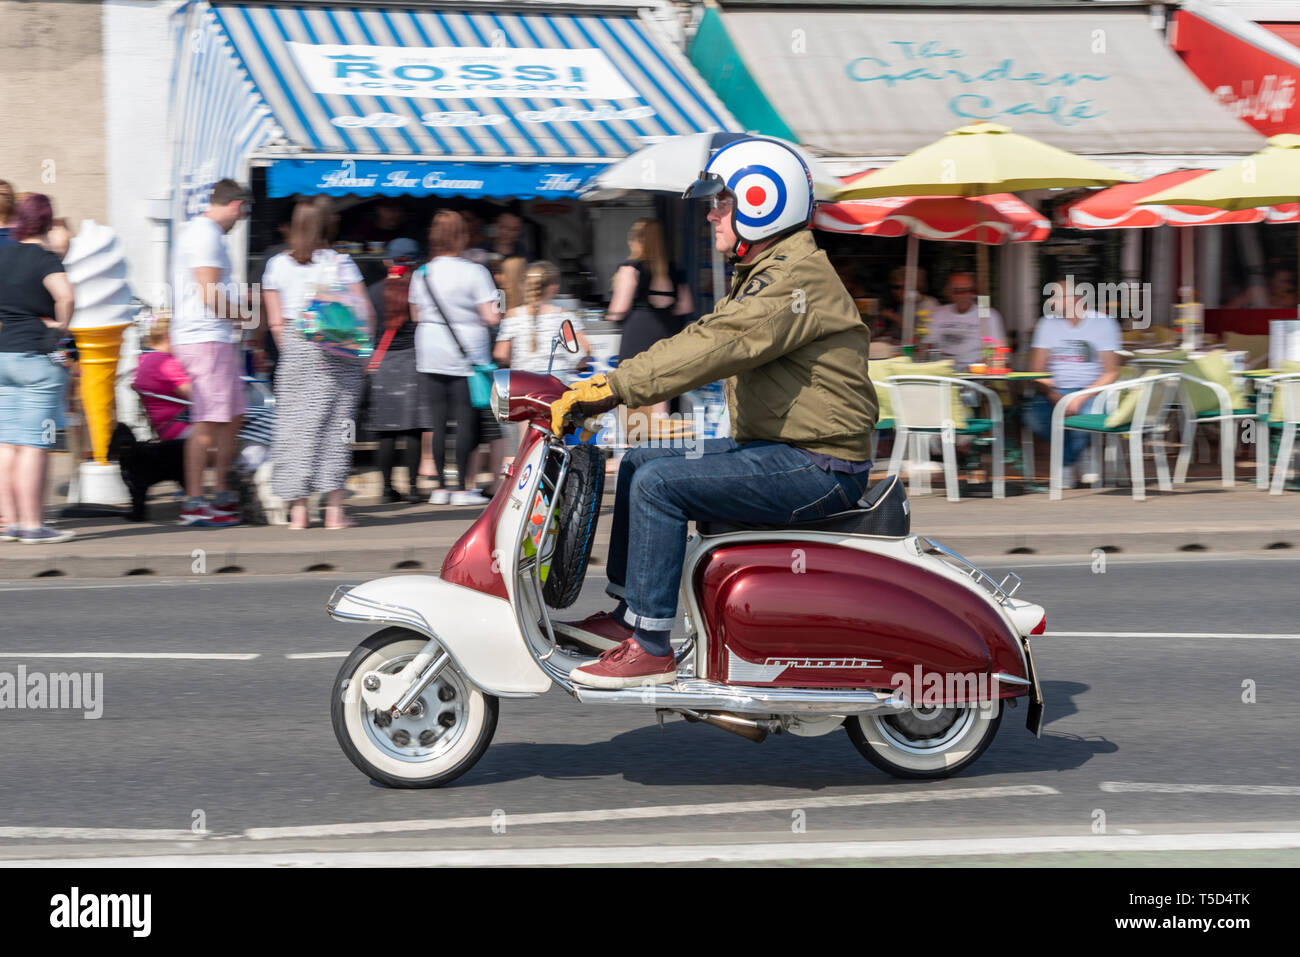 classic-lambretta-motor-scooter-riding-past-arches-cafes-at-the-southend-shakedown-resurrection-motorcycle-rally-event-southend-on-sea-essex-uk-T5D4TK.jpg